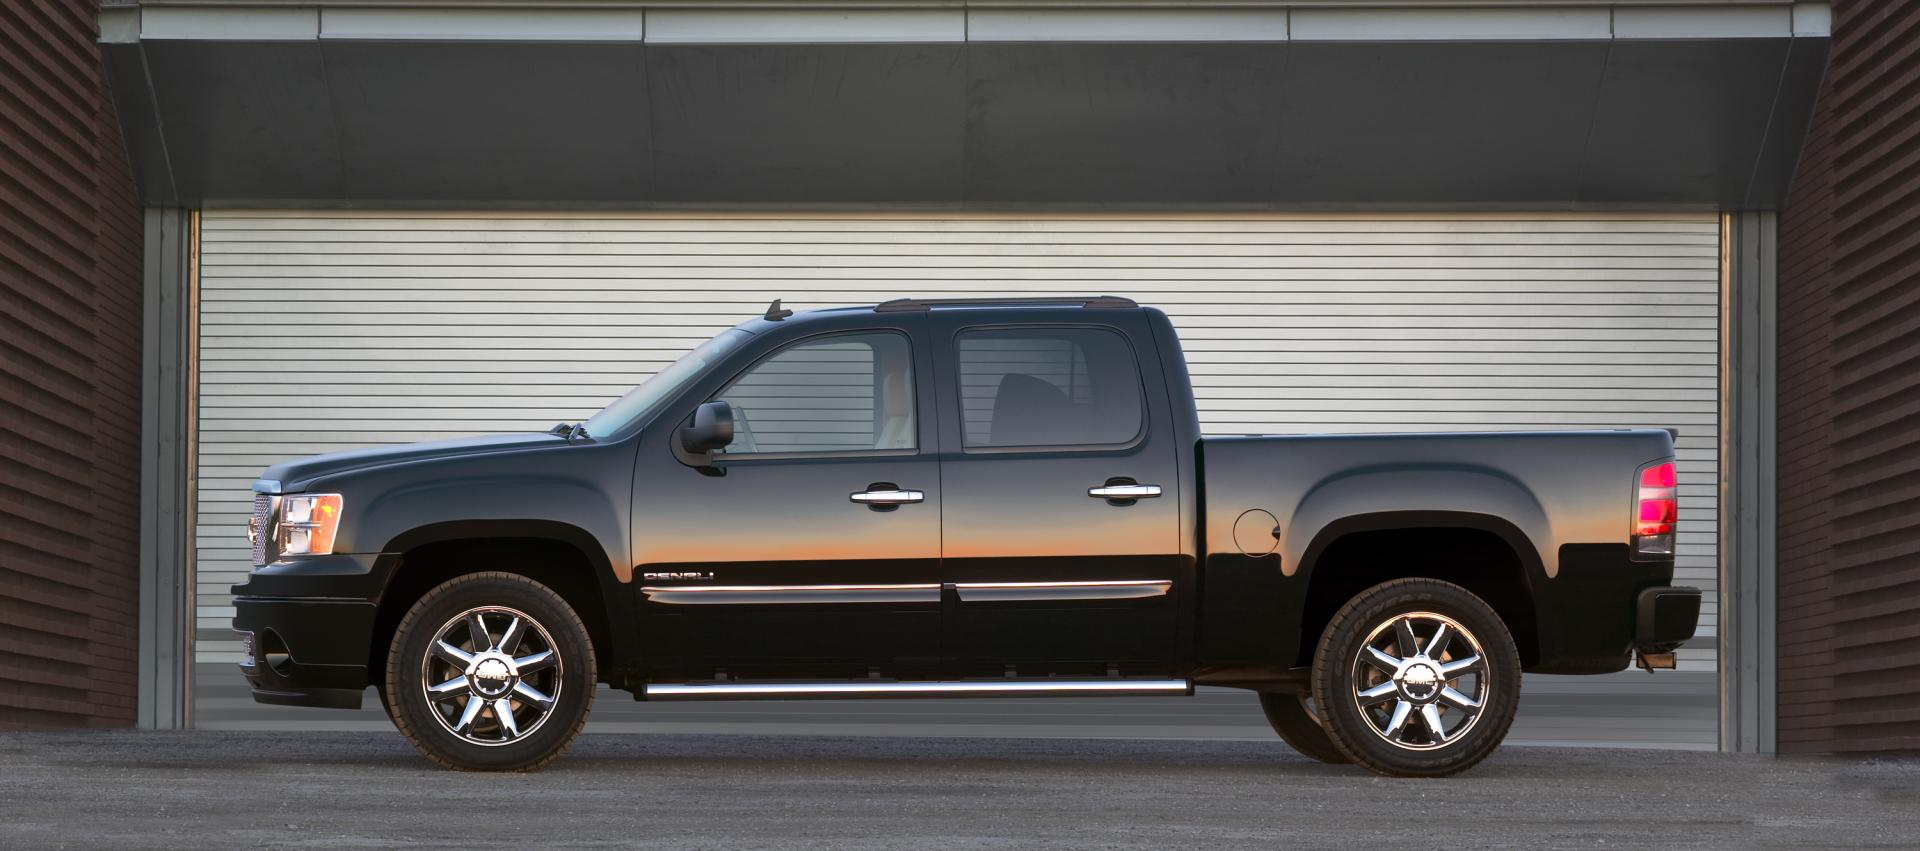 2012 gmc sierra 1500 technical specifications and data engine dimensions and mechanical details conceptcarz com